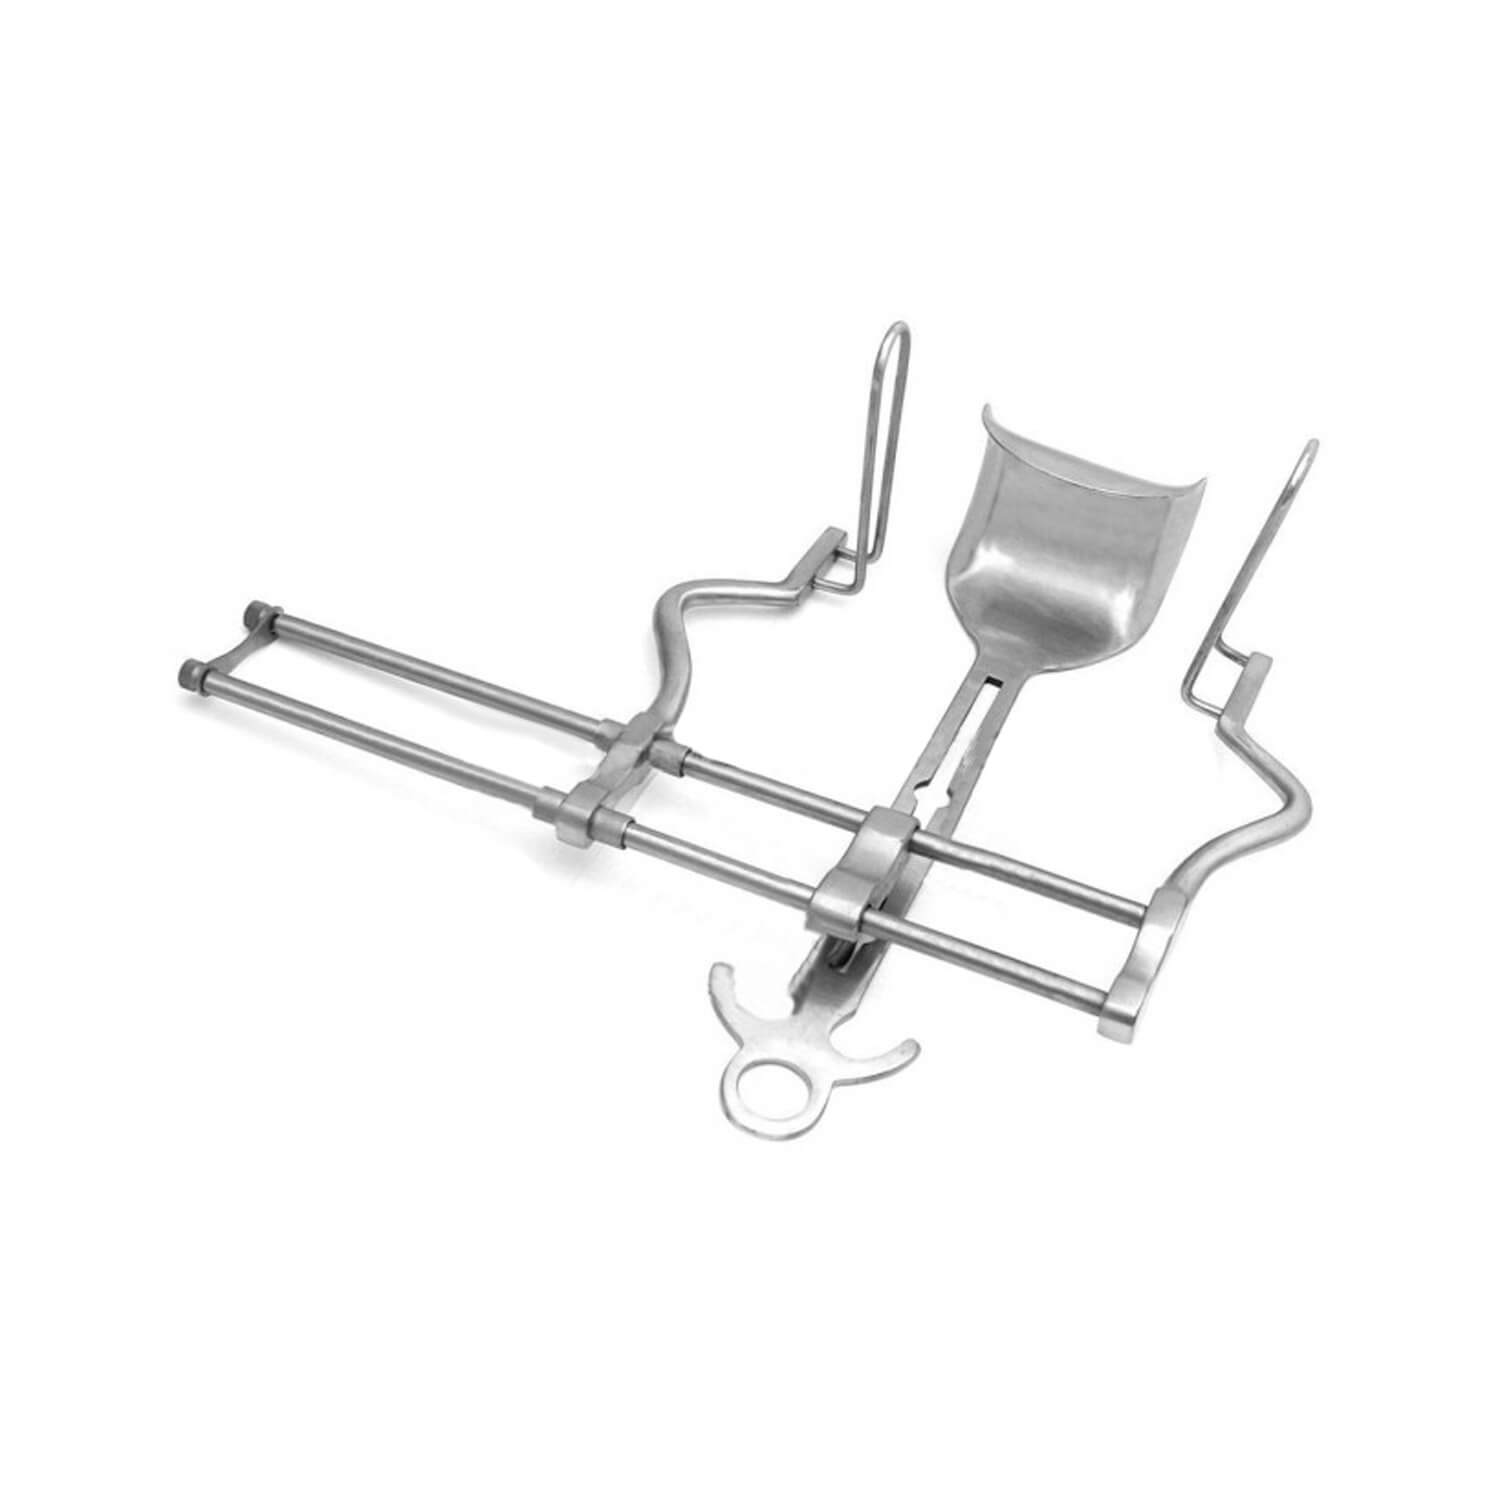 "Balfour Abdominal Retractor 12"" Spread Stainless Steel"